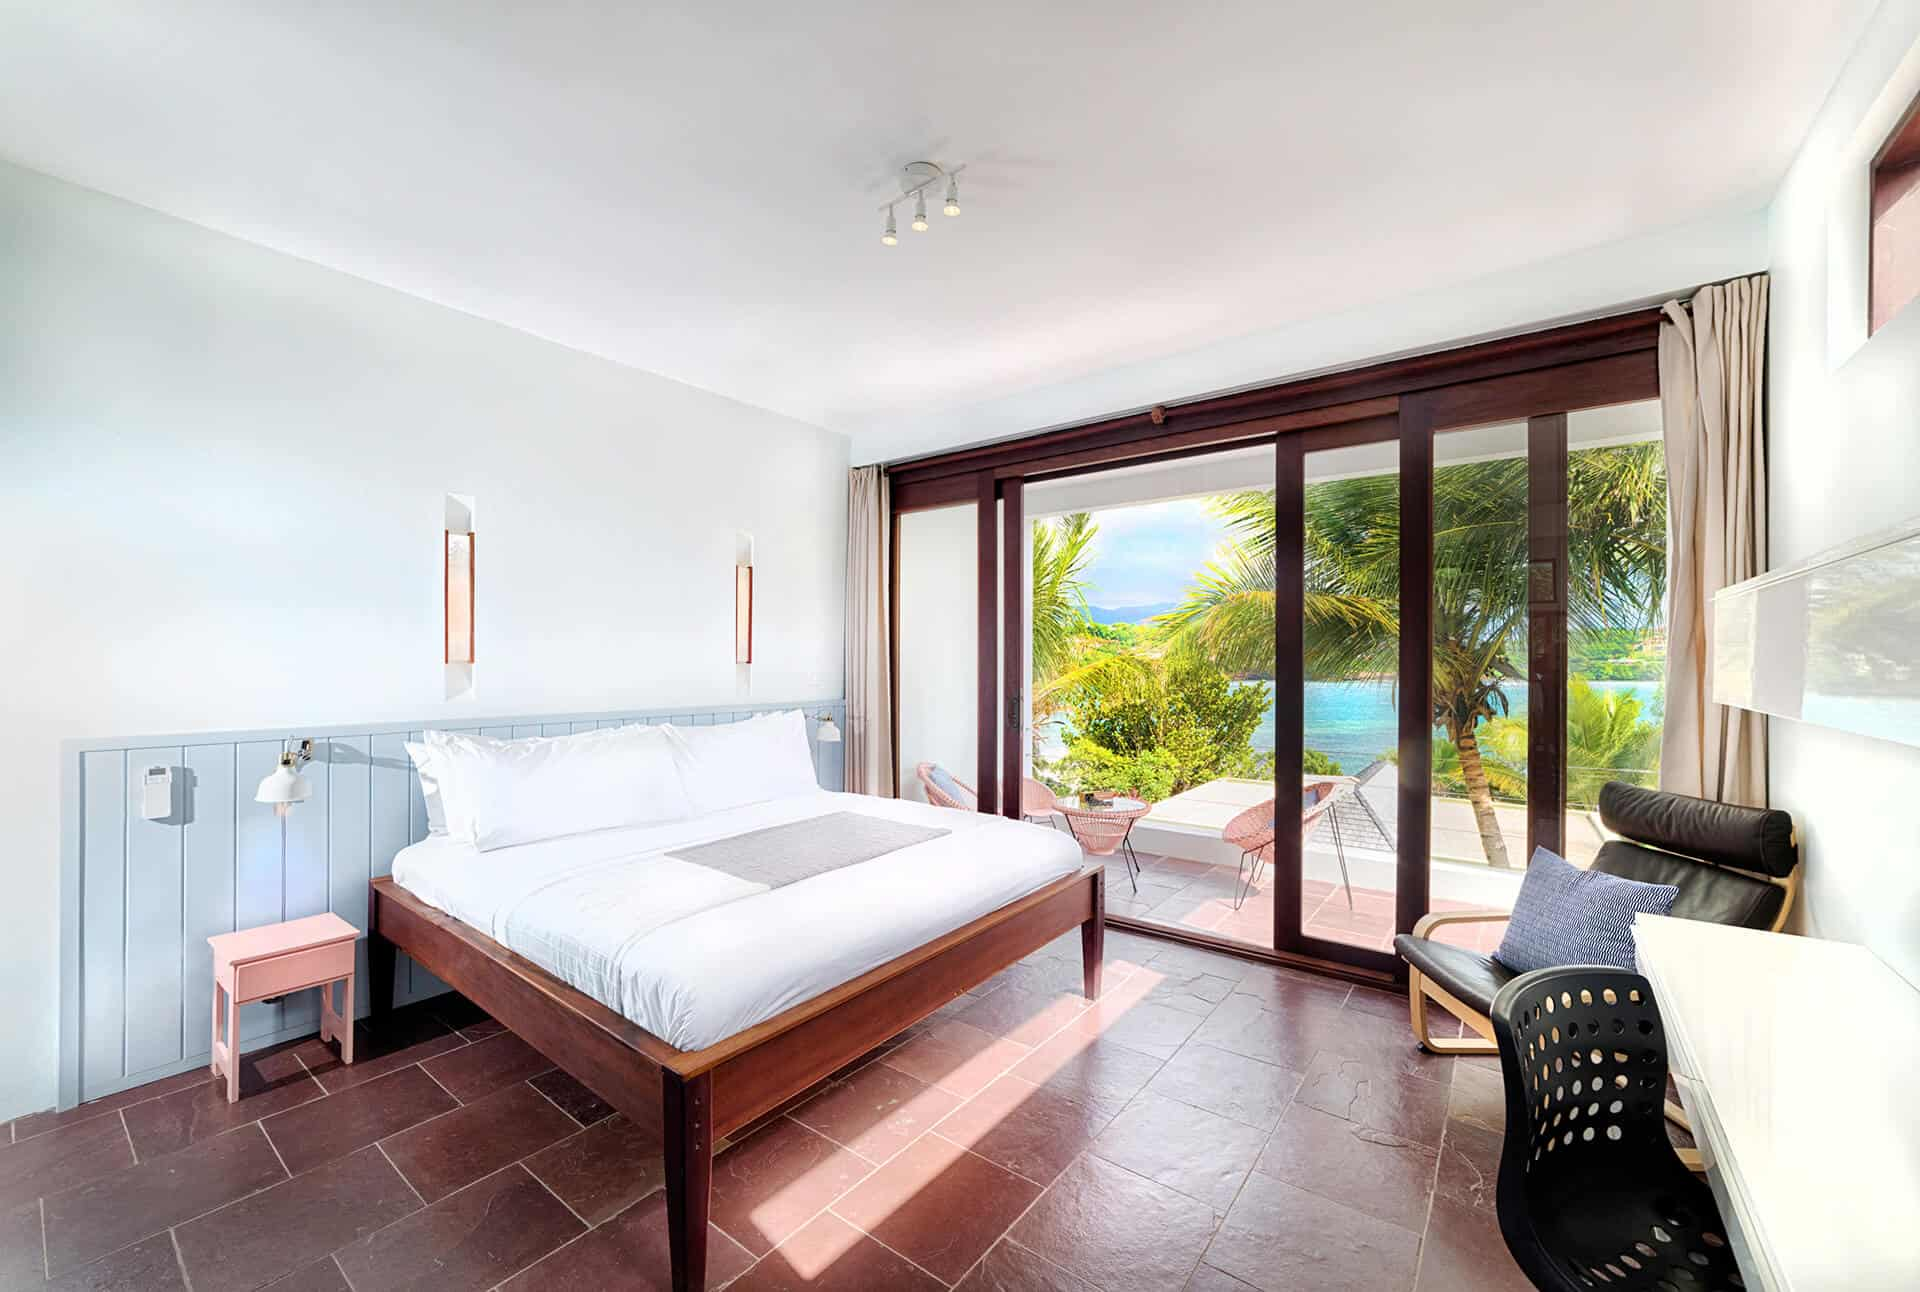 Seaview villa's room witha view